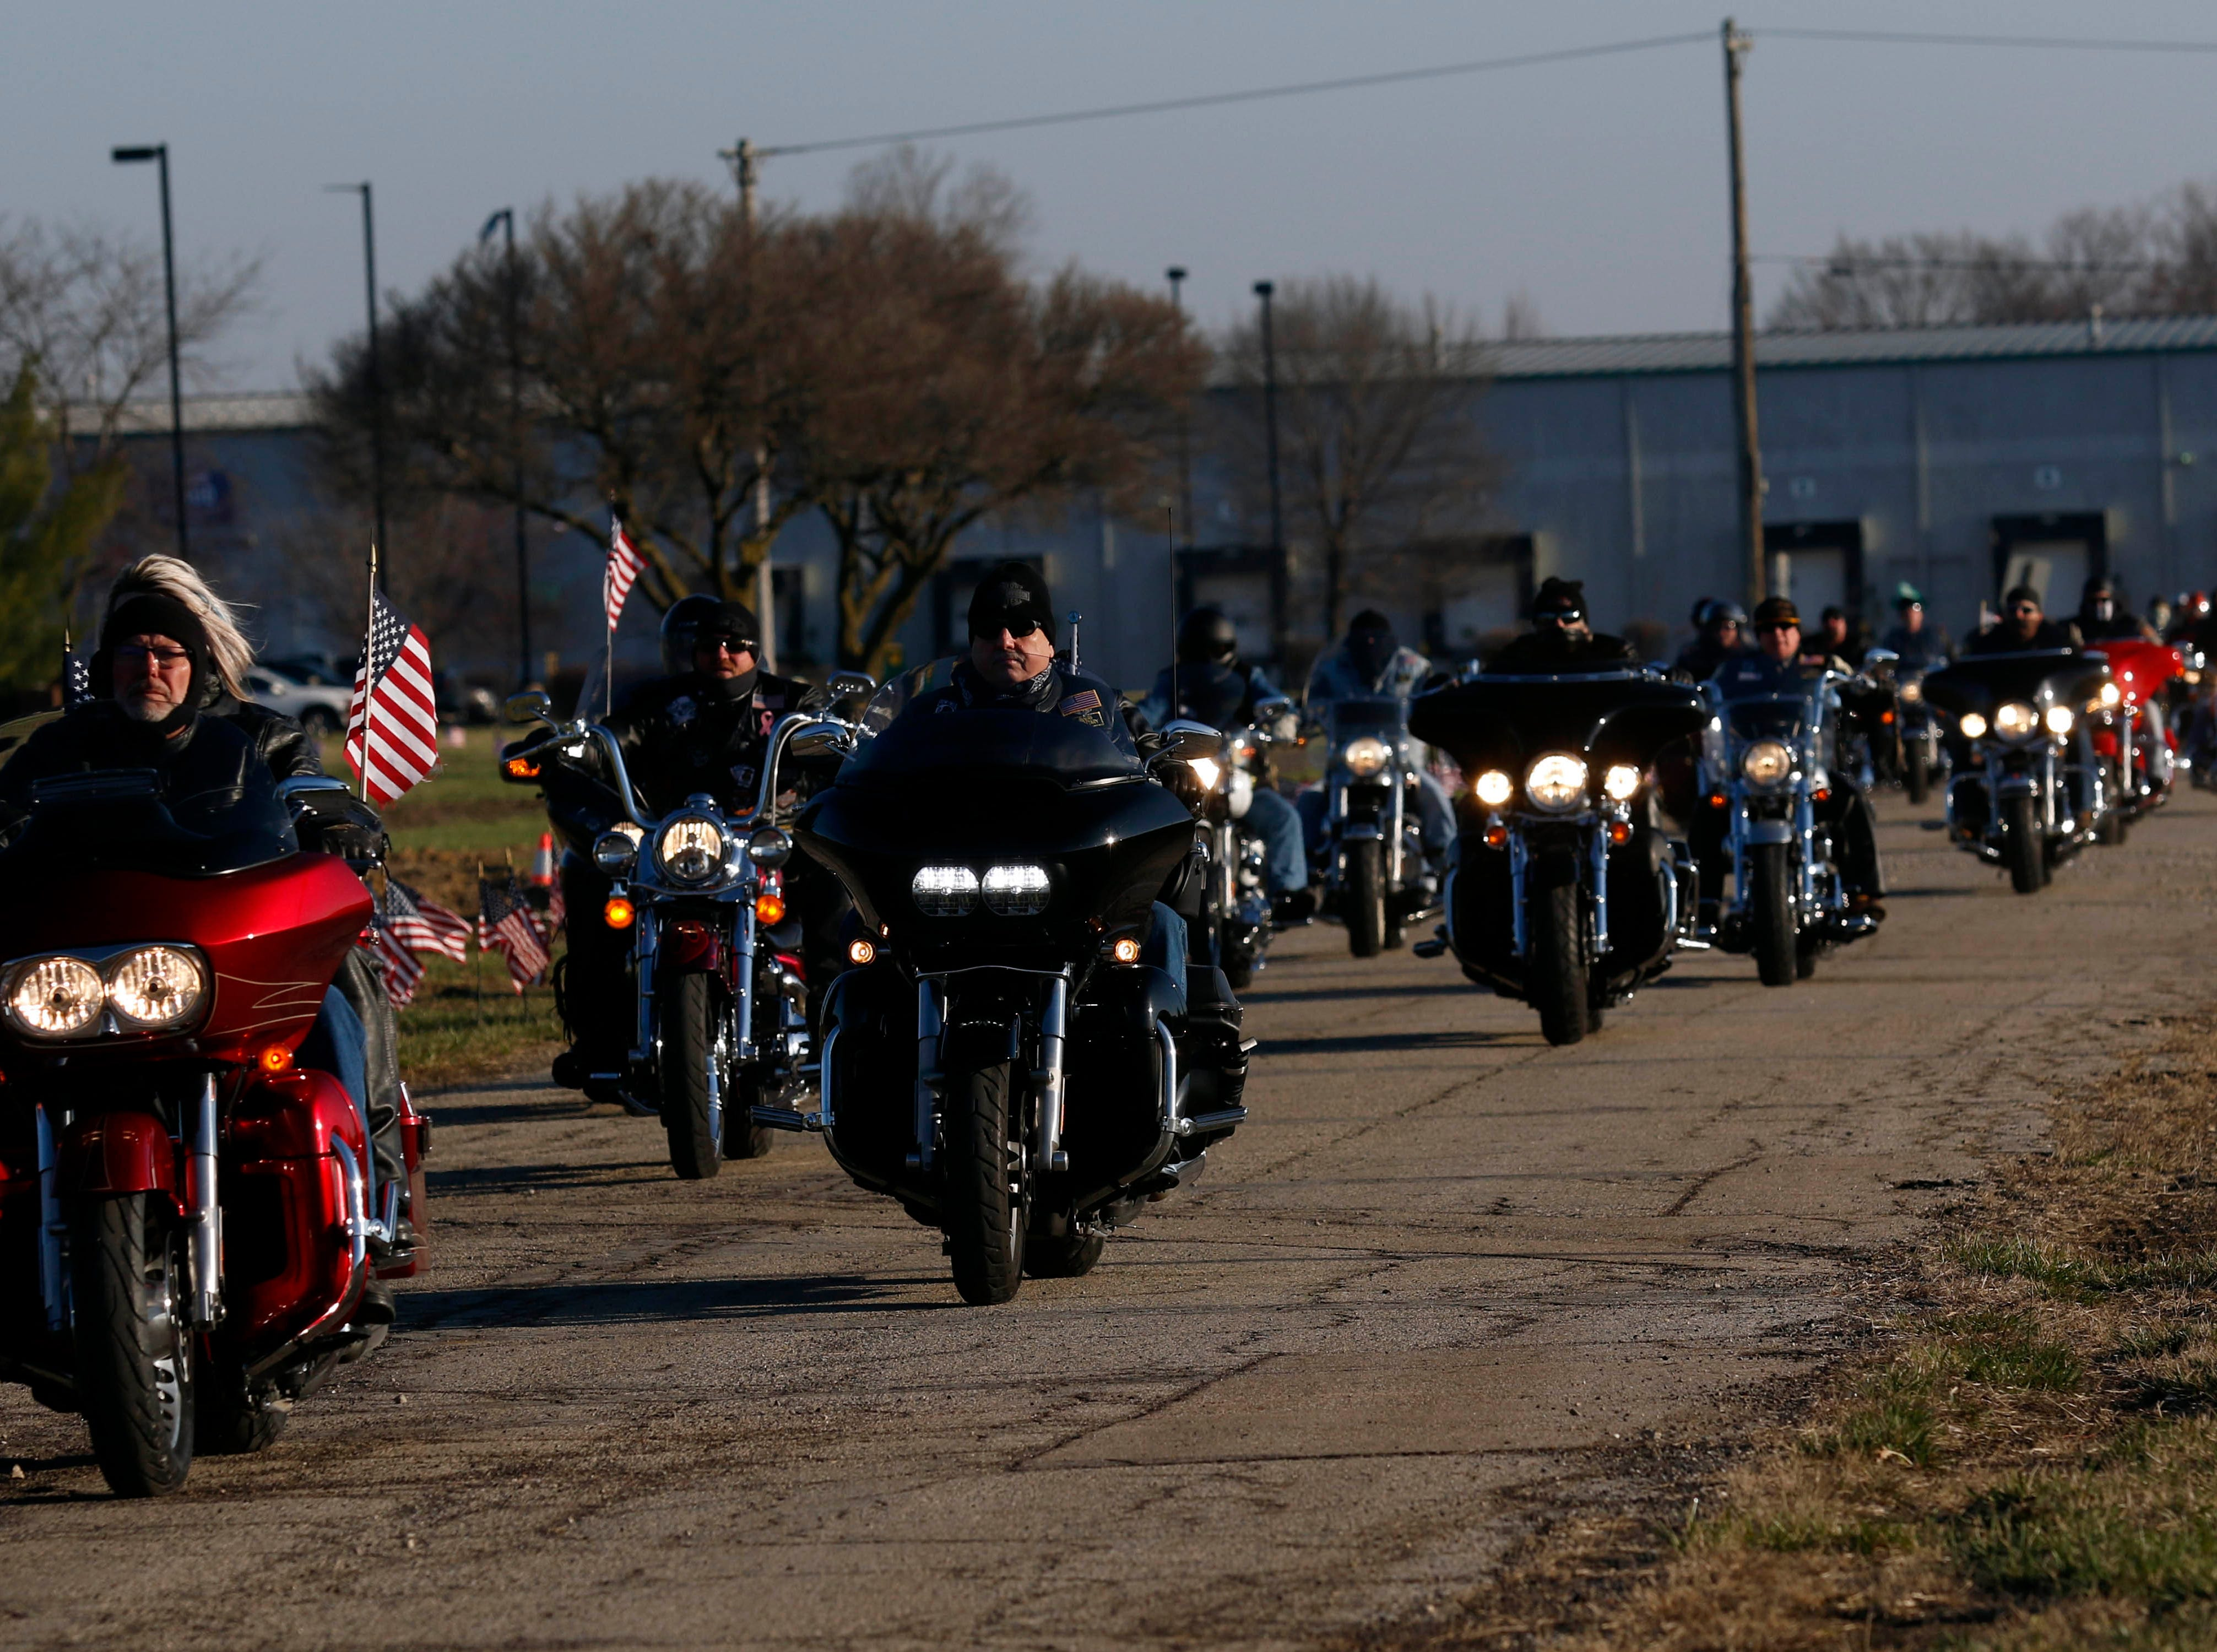 Hundereds of motorcycles approach Rickenbacker International Airport Wednesday, April 3, 2019, to escort the body of Sgt. Joseph Collette to Lancaster.